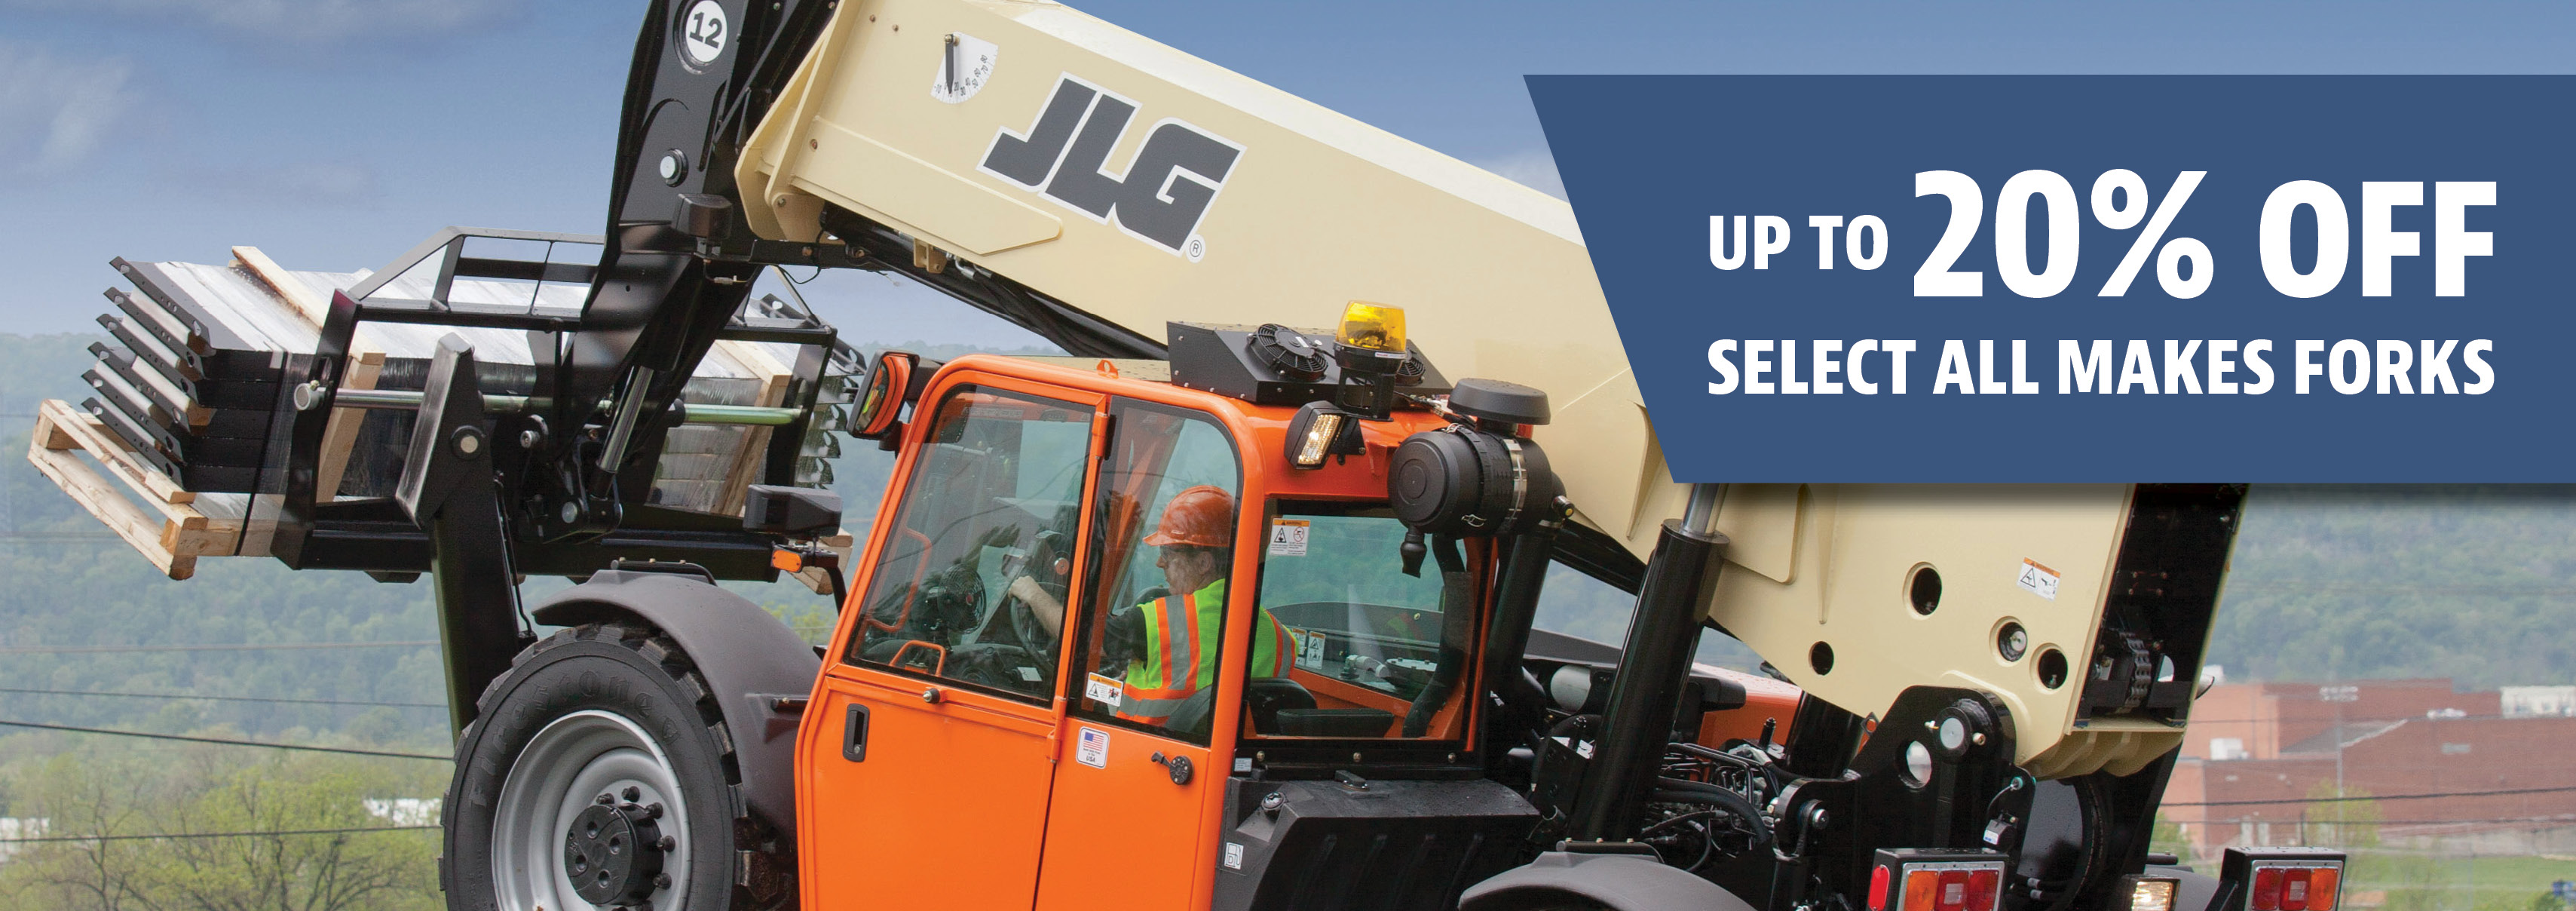 Meet Aerial Lift Inspection Requirements With Jlg Ground Support